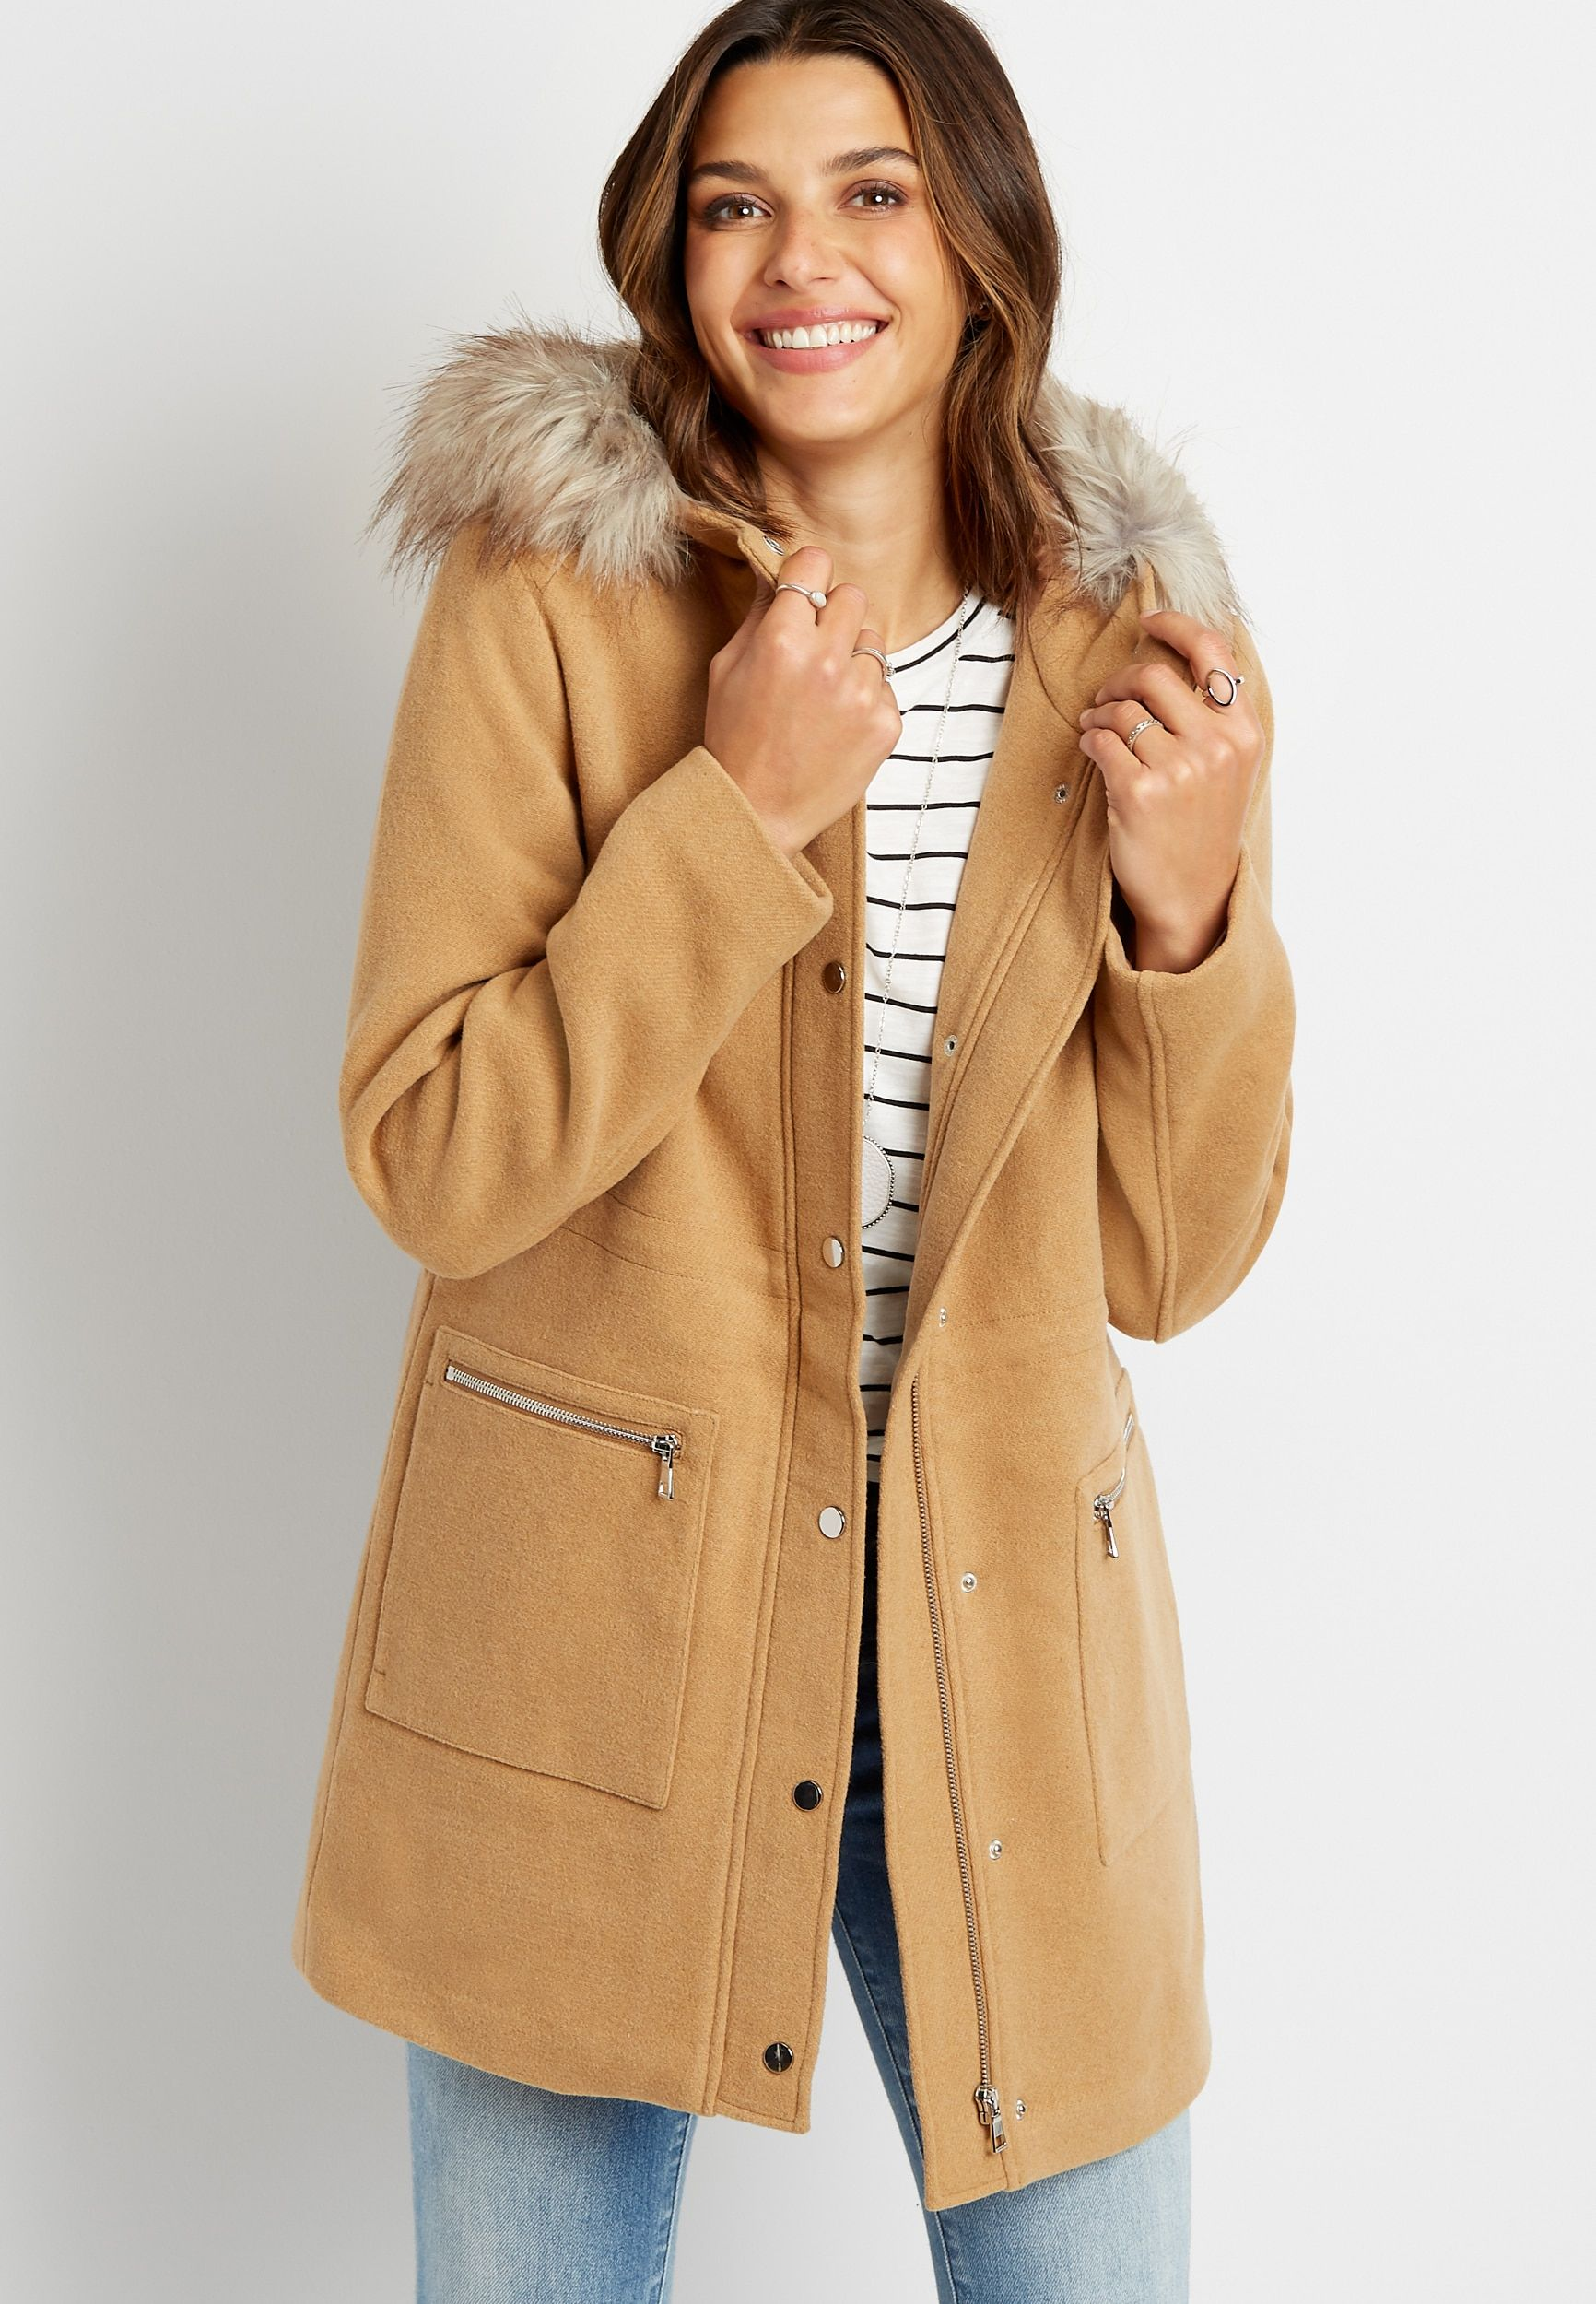 Solid Faux Fur Trim Hooded Outerwear Jacket Hooded Outerwear Outerwear Jackets Outerwear [ 2500 x 1732 Pixel ]